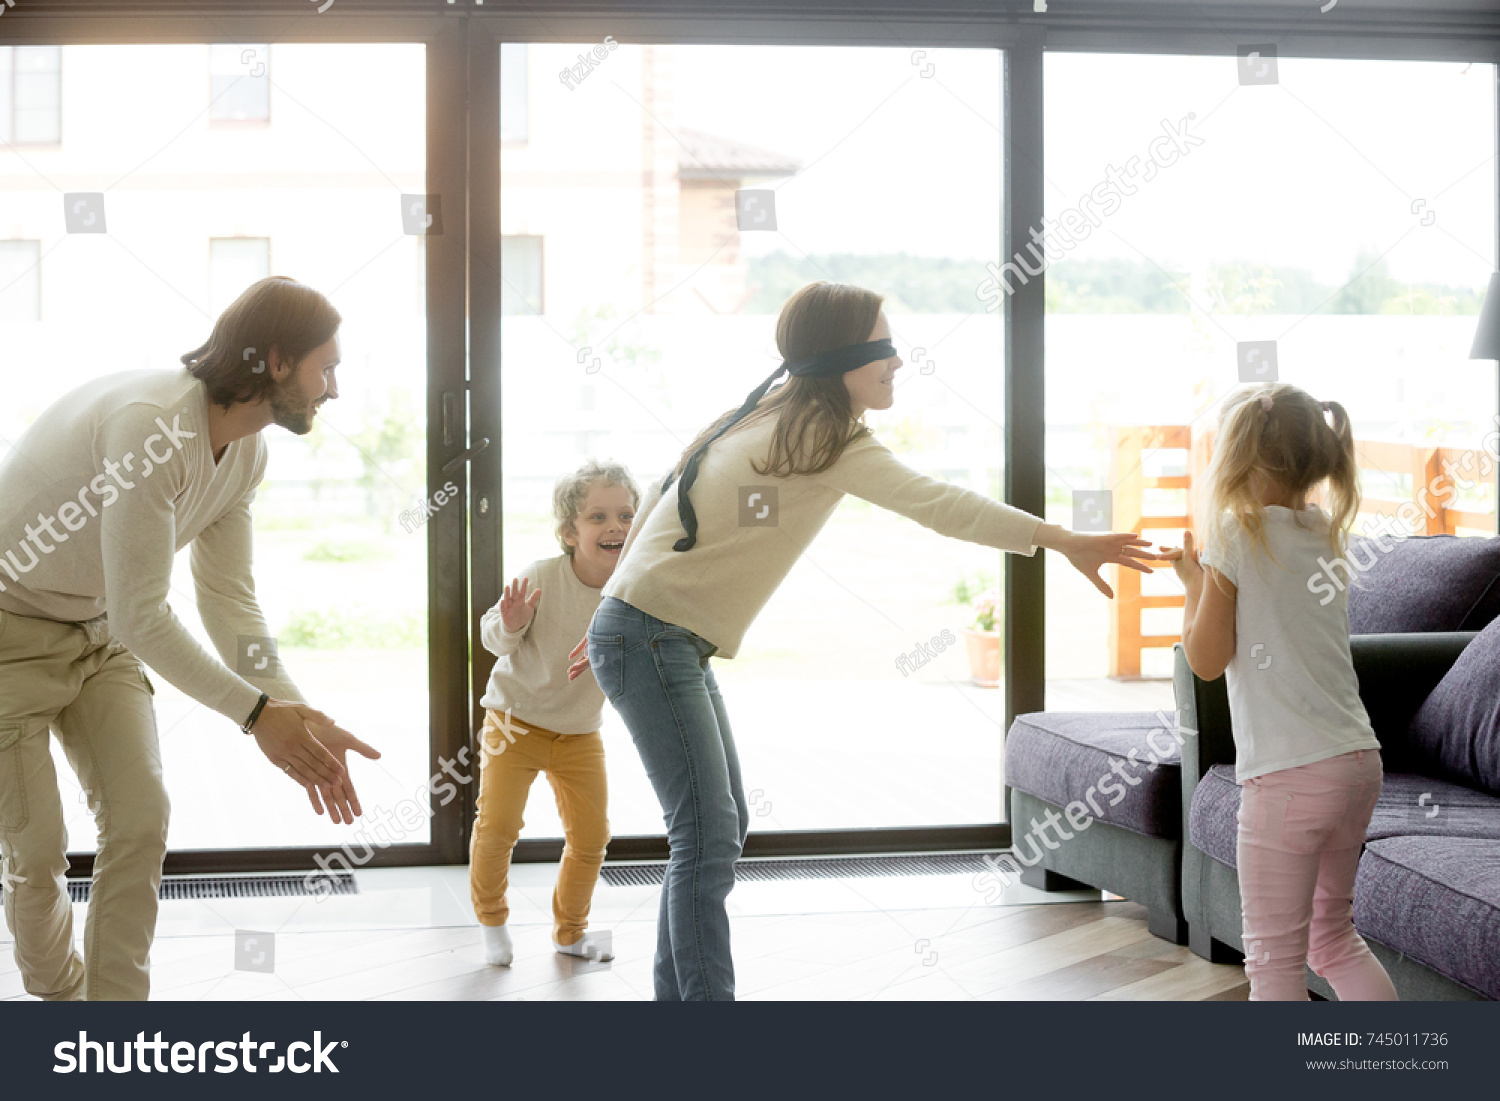 Hide And Seek Kids Blindfolded Mother Playing Hide Seek Game Stock Photo Edit Now